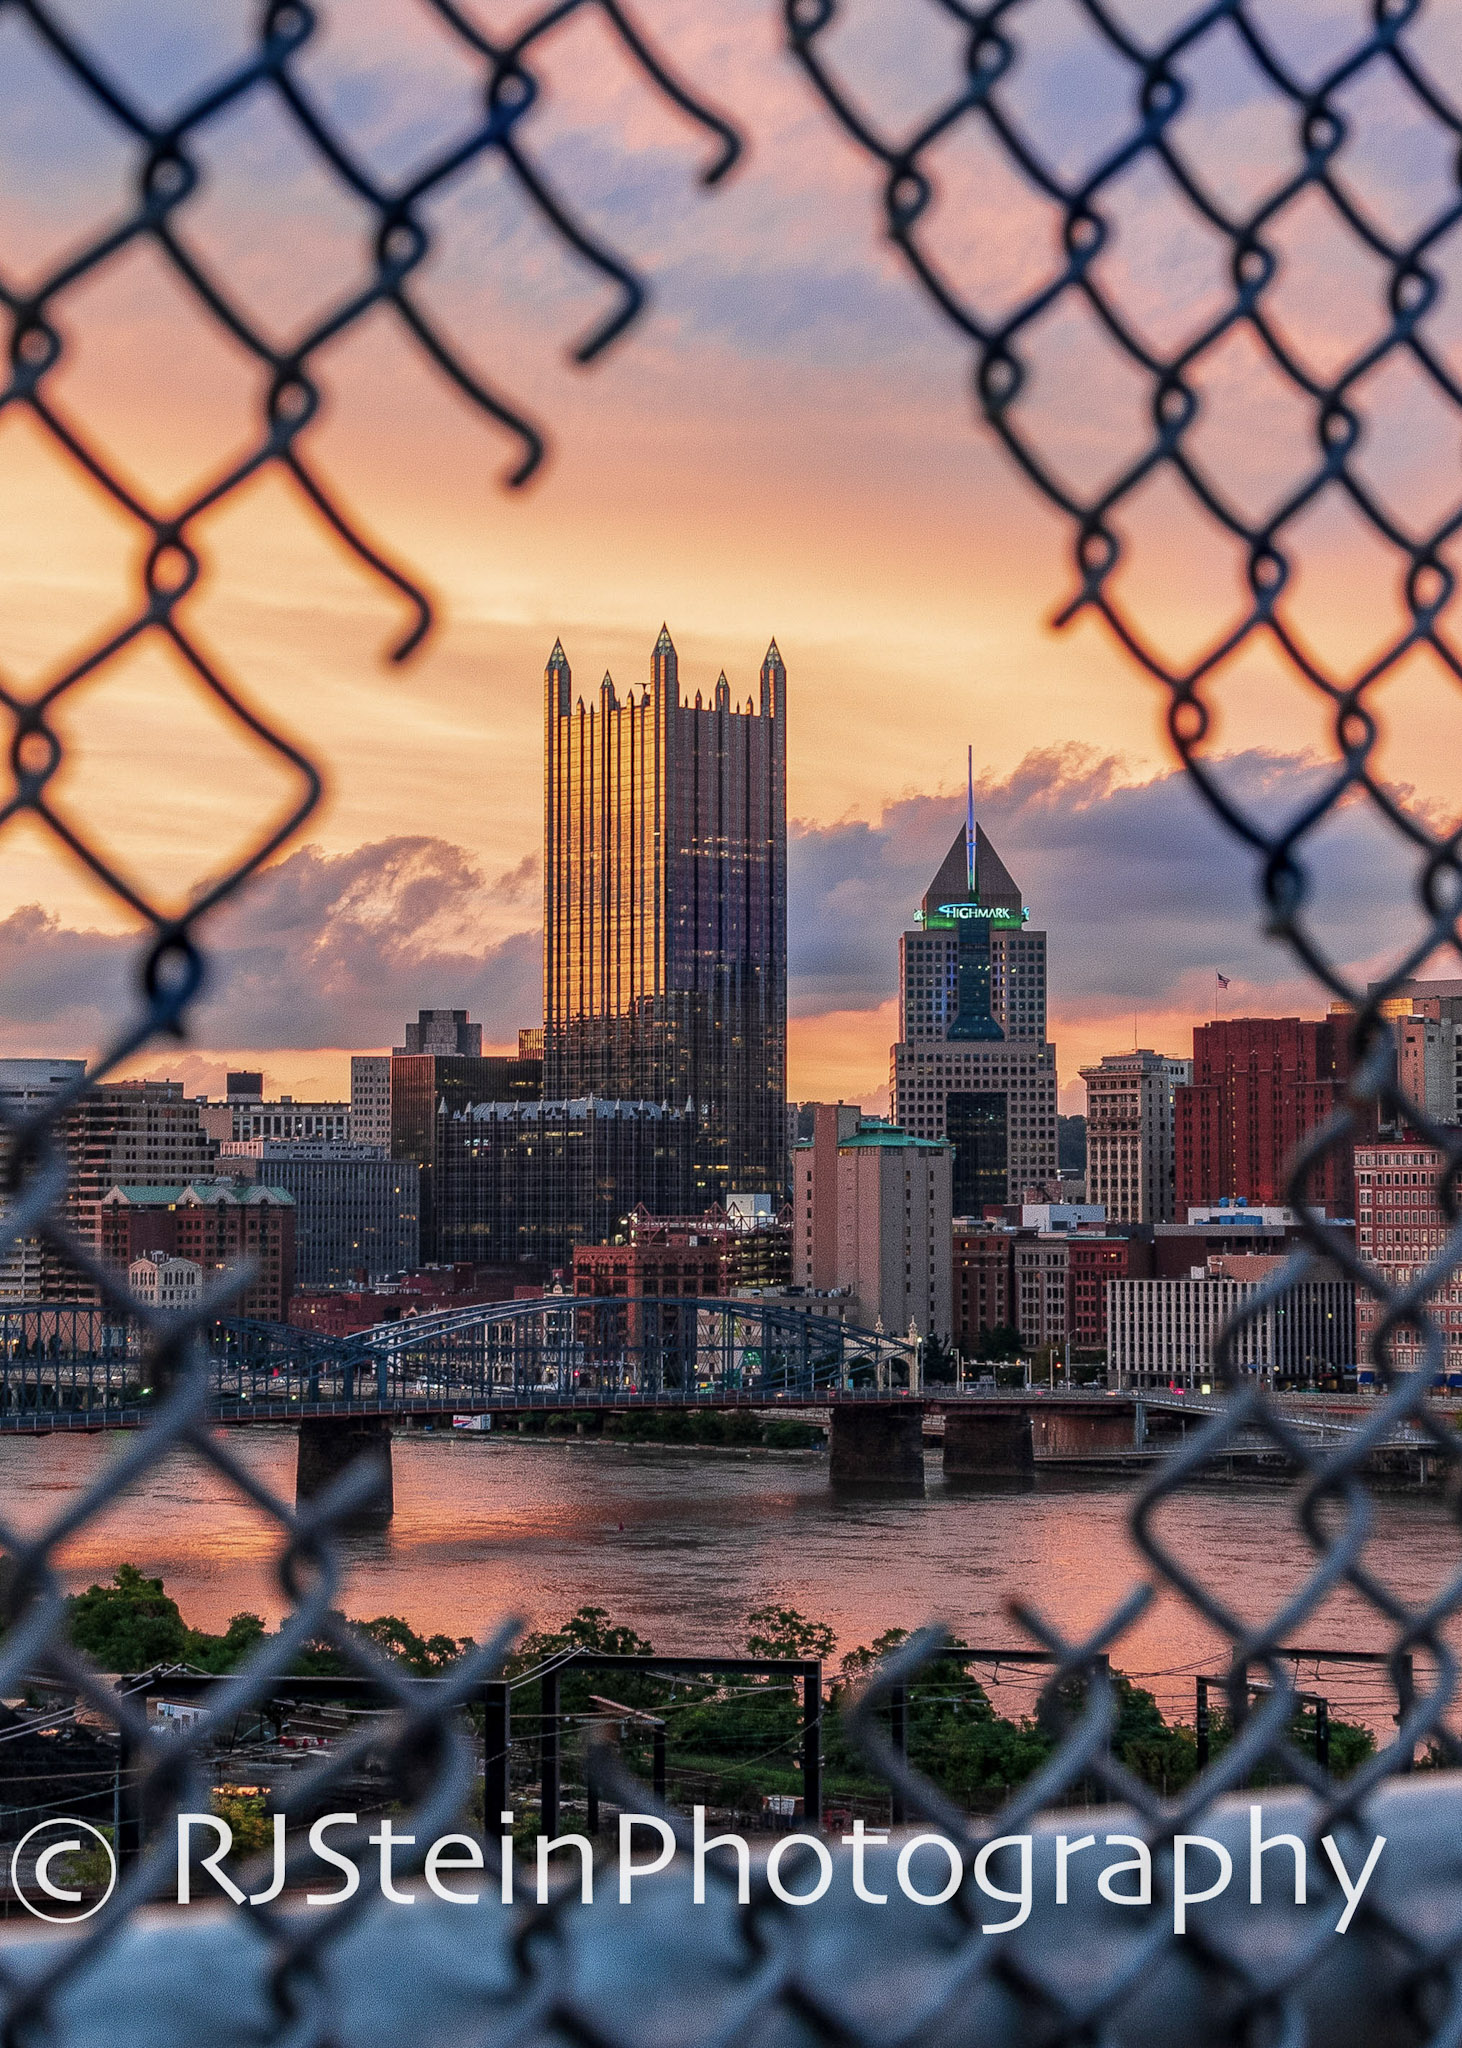 sunset through the fence, pittsburgh, 2018